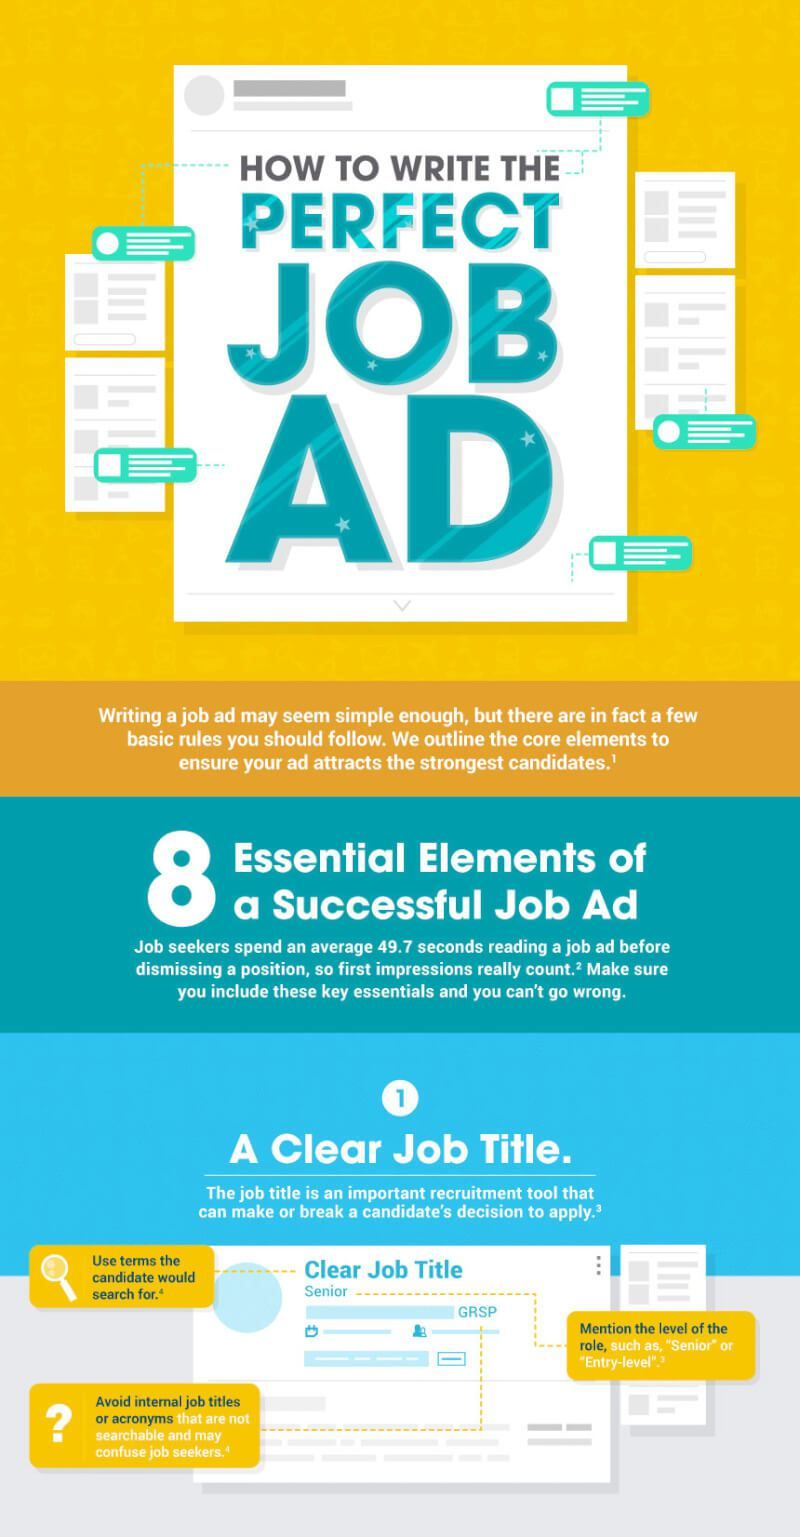 [Infographic] How to Write the Perfect Job Ad Job ads